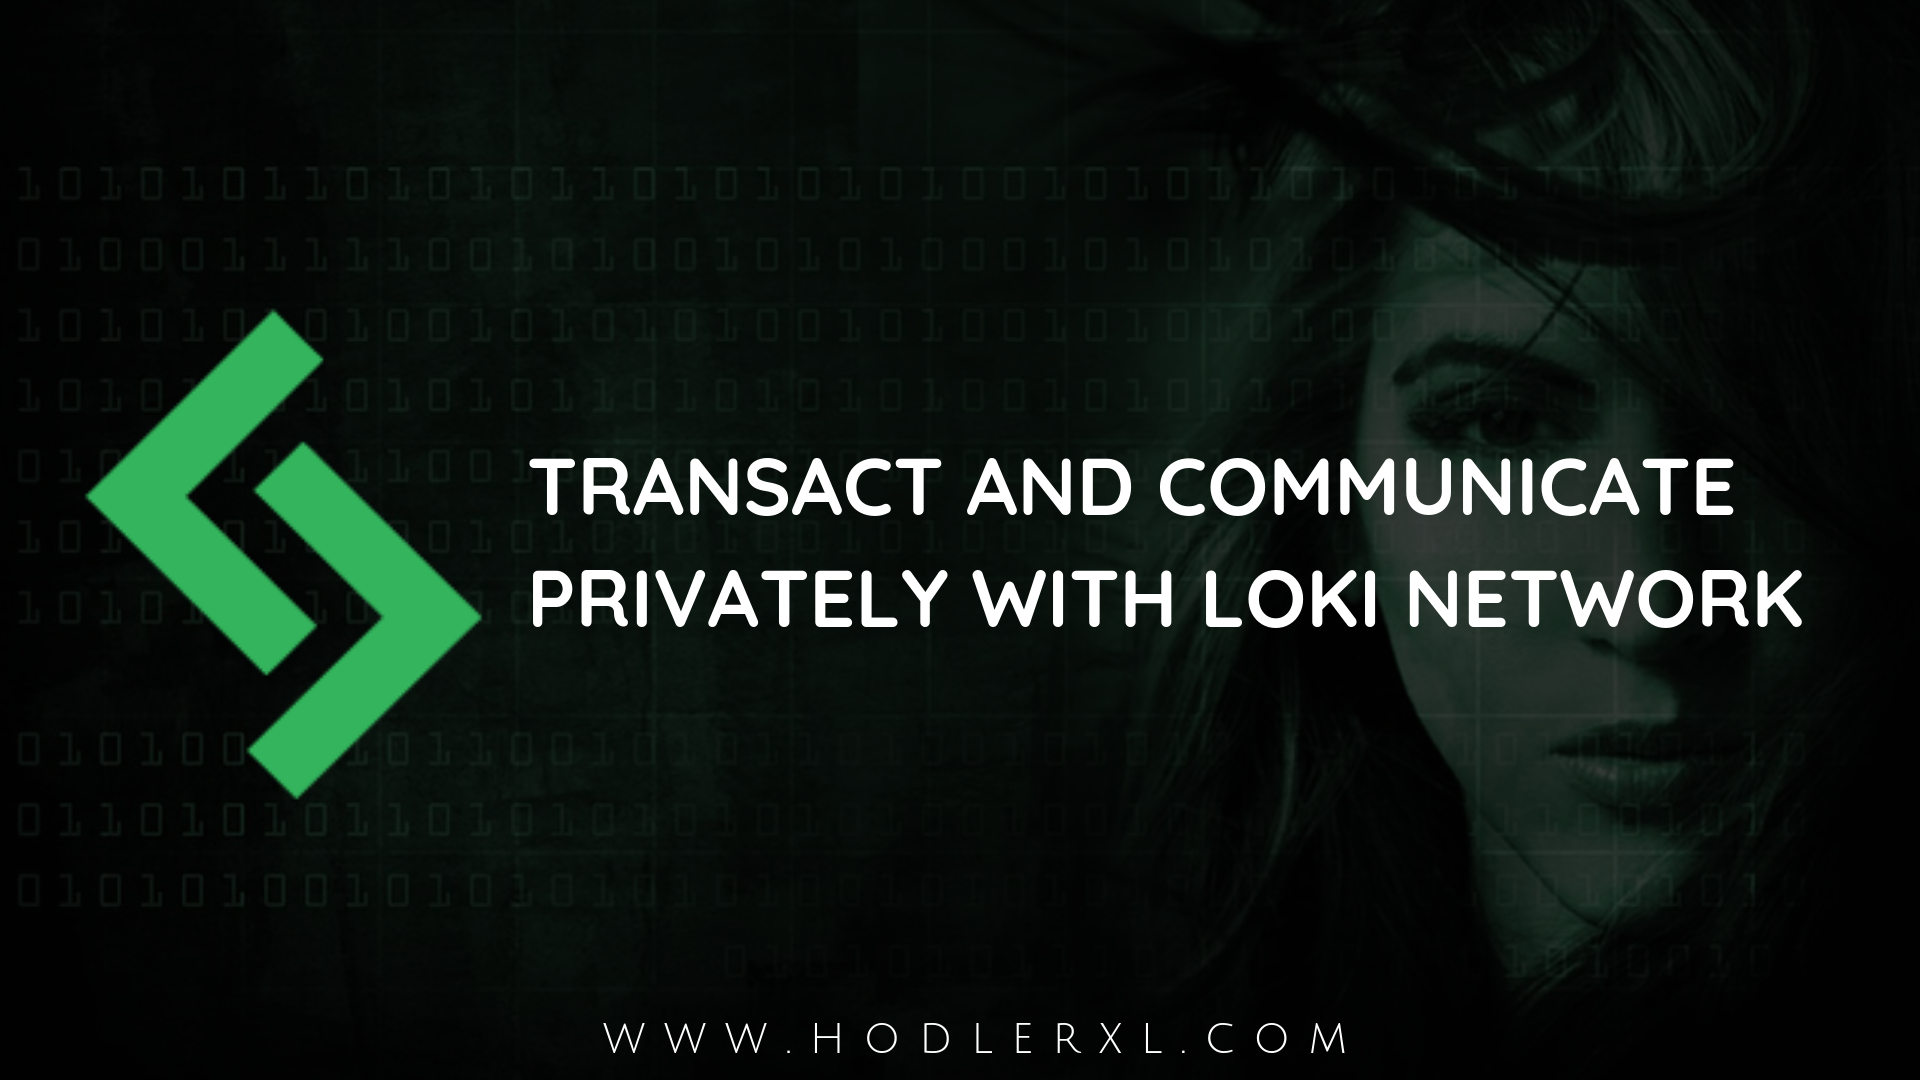 Transact And Communicate Privately With Loki Network